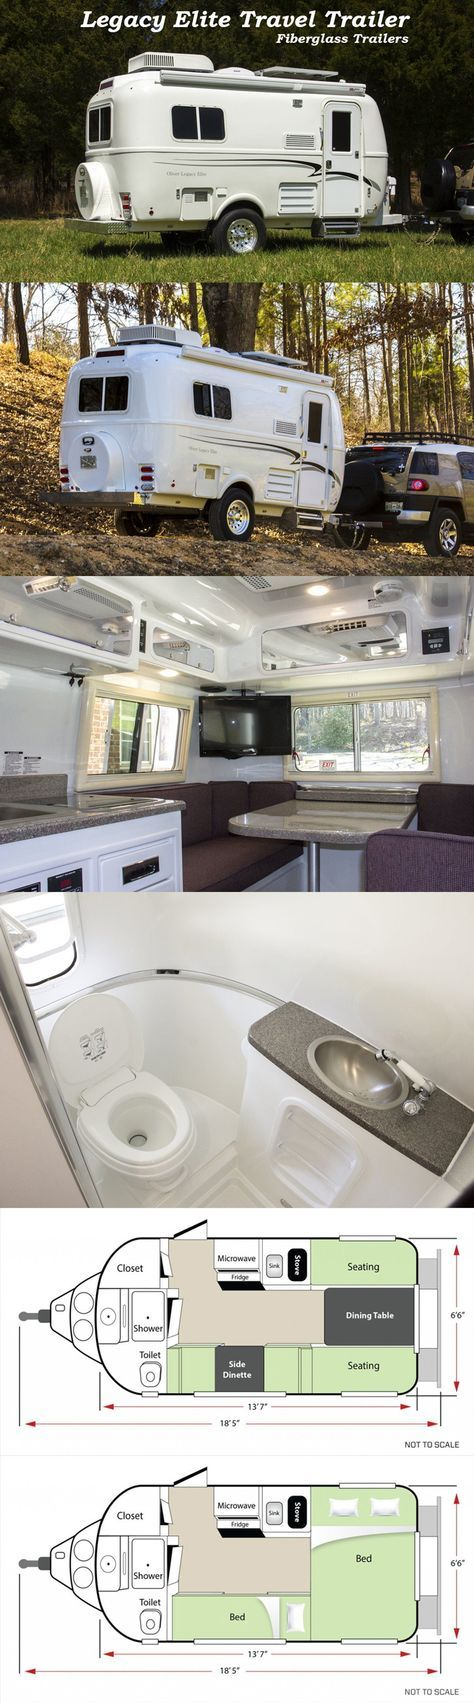 The 25 best rv trailers ideas on pinterest trailer organization travel trailers and rv